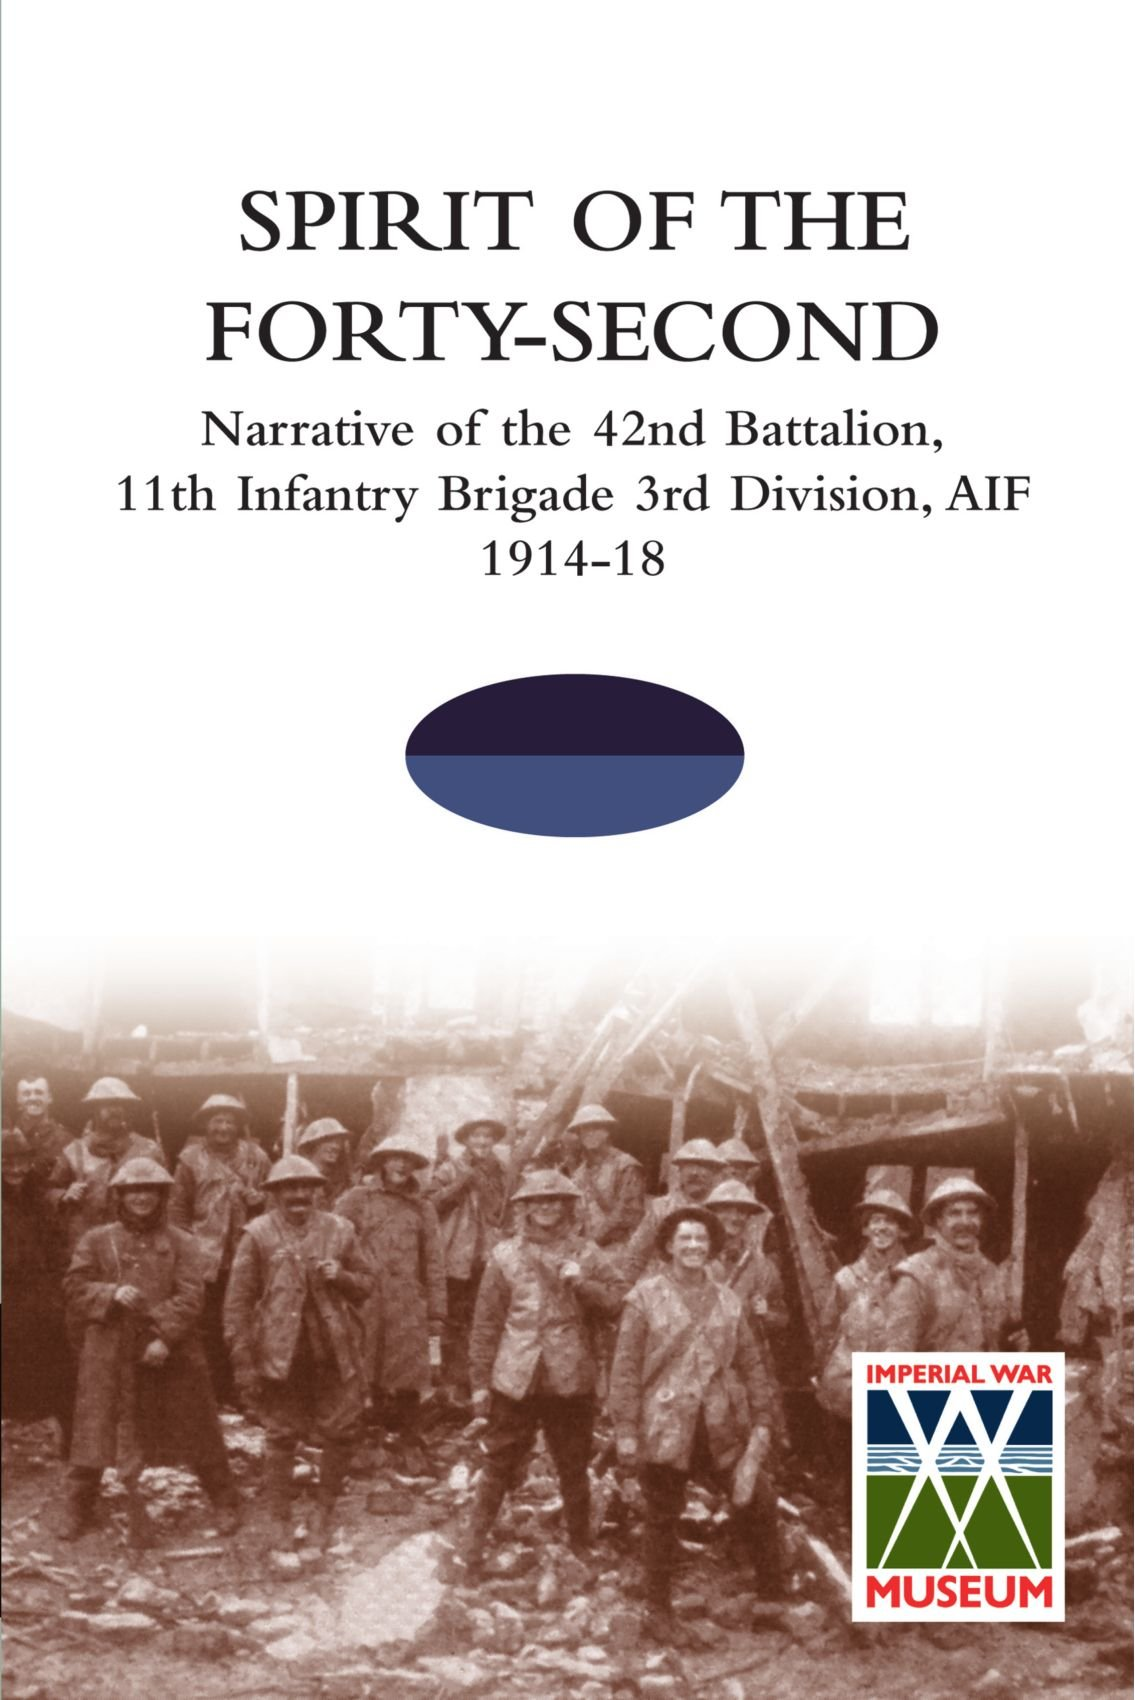 Spirit of the Forty- Second: Narrative of the 42nd Battalion, 11th Infantry Brigade 3rd Division, AIF 1914-18 pdf